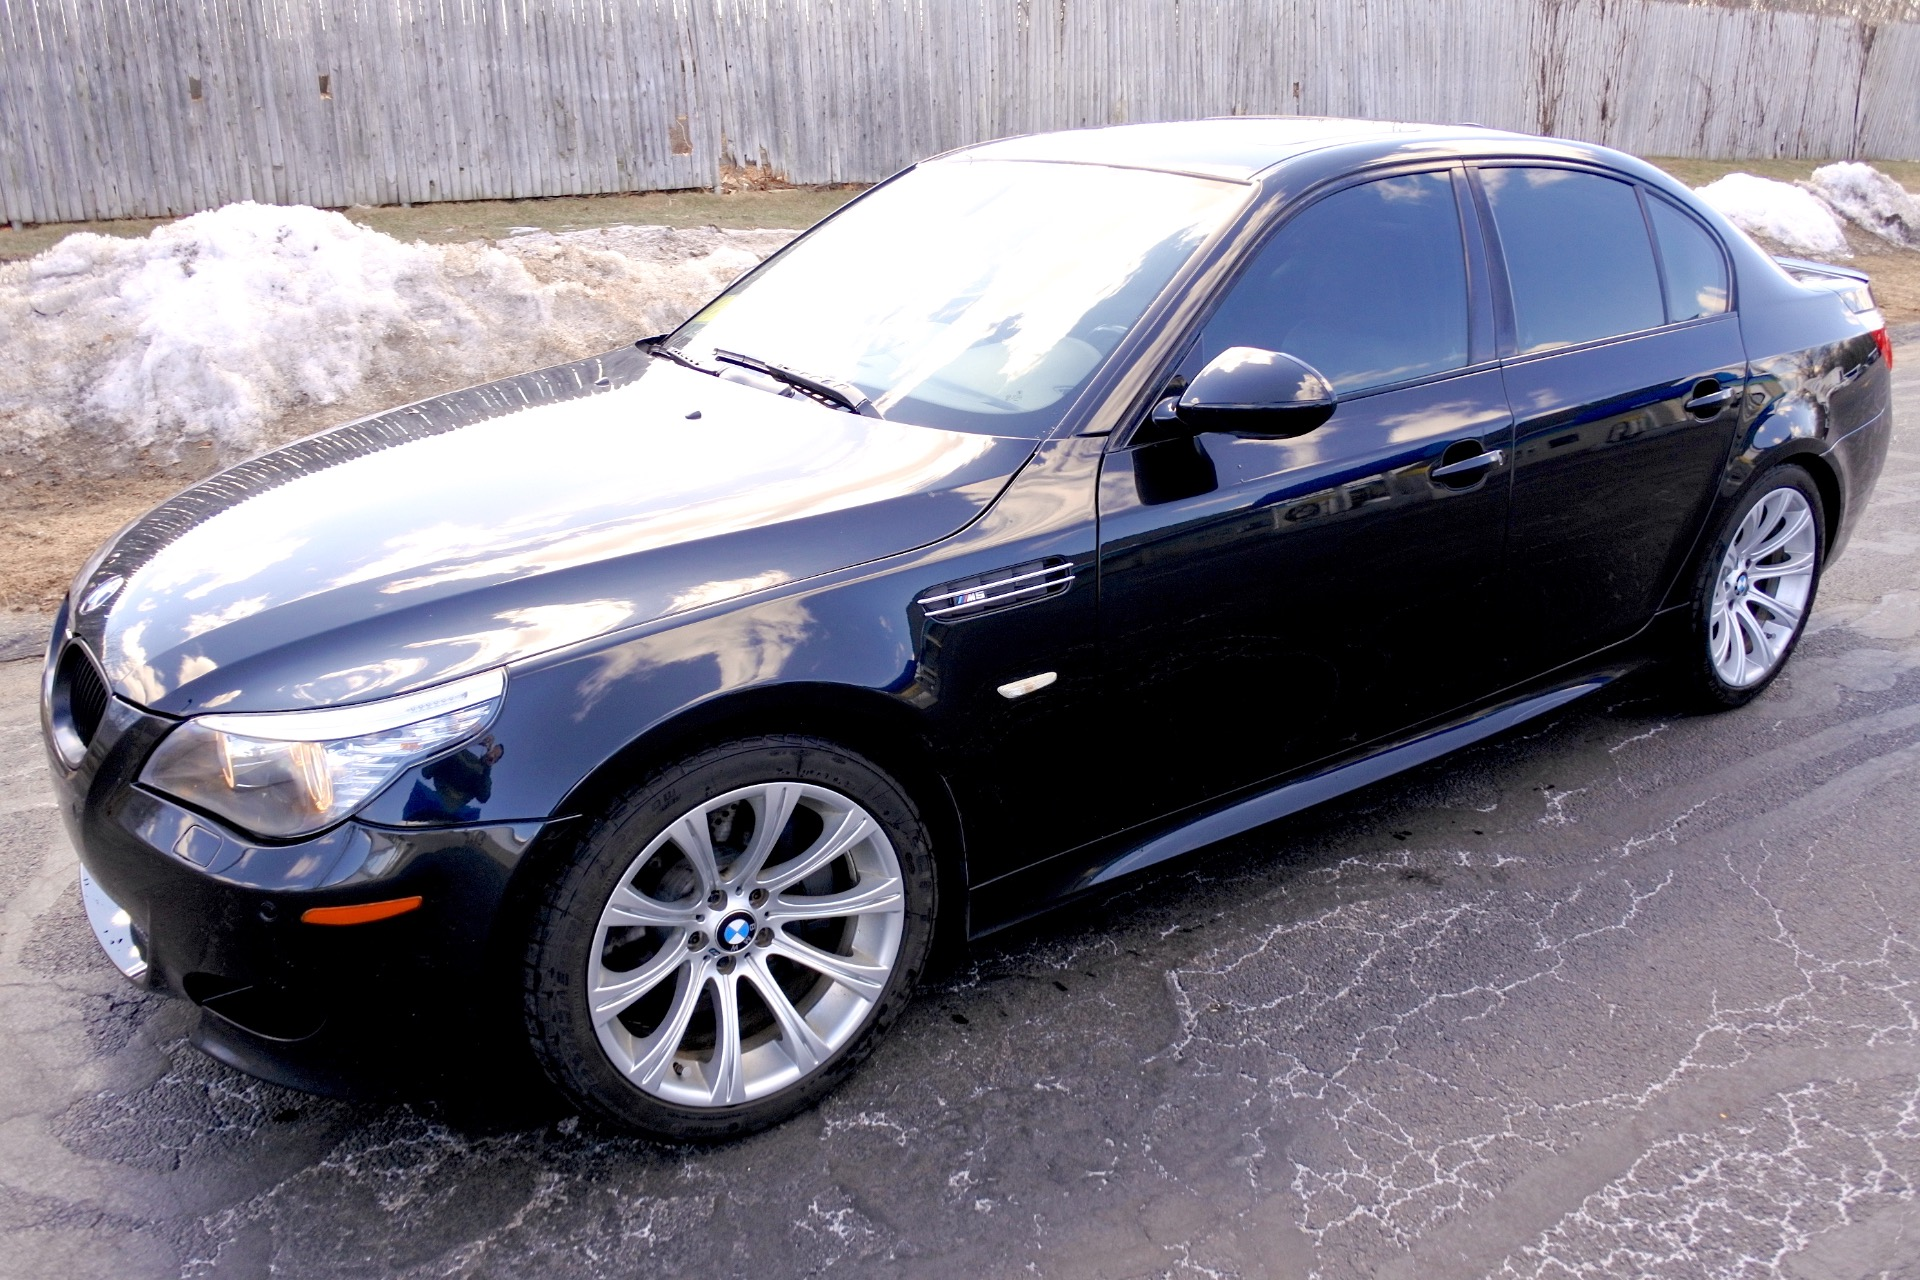 Used 2010 BMW M5 4dr Sdn Used 2010 BMW M5 4dr Sdn for sale  at Metro West Motorcars LLC in Shrewsbury MA 1